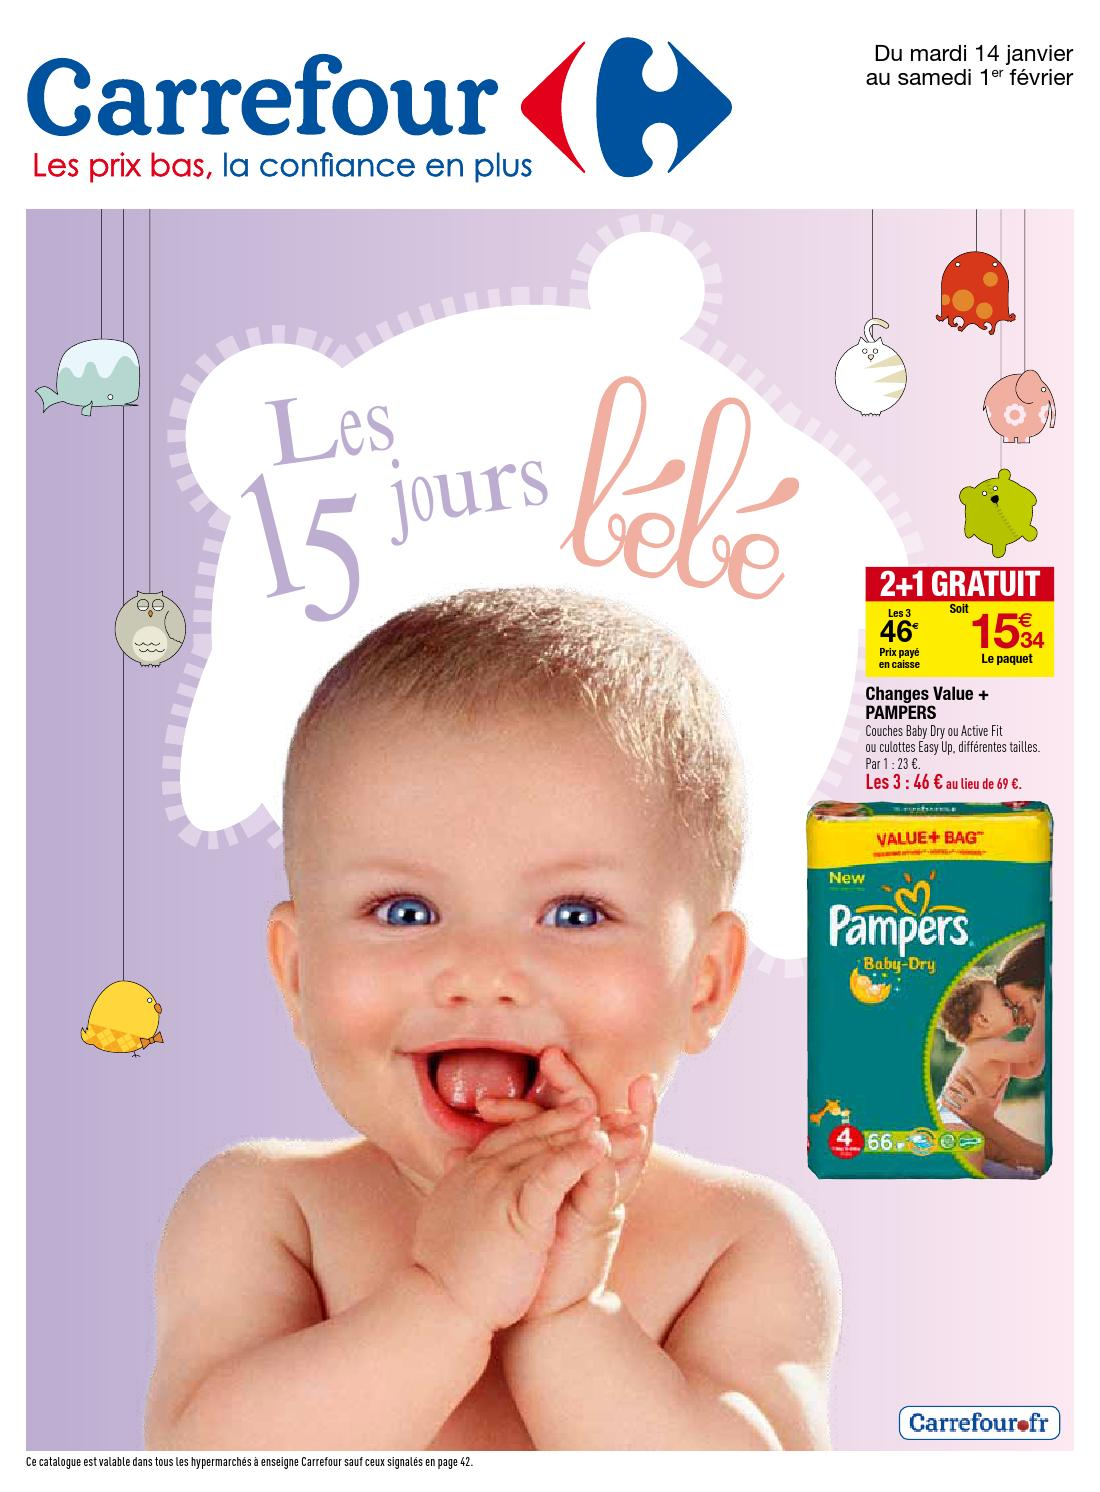 couverture bébé carrefour Catalogue Carrefour   14.01 1.02.2014 by joe monroe   issuu couverture bébé carrefour